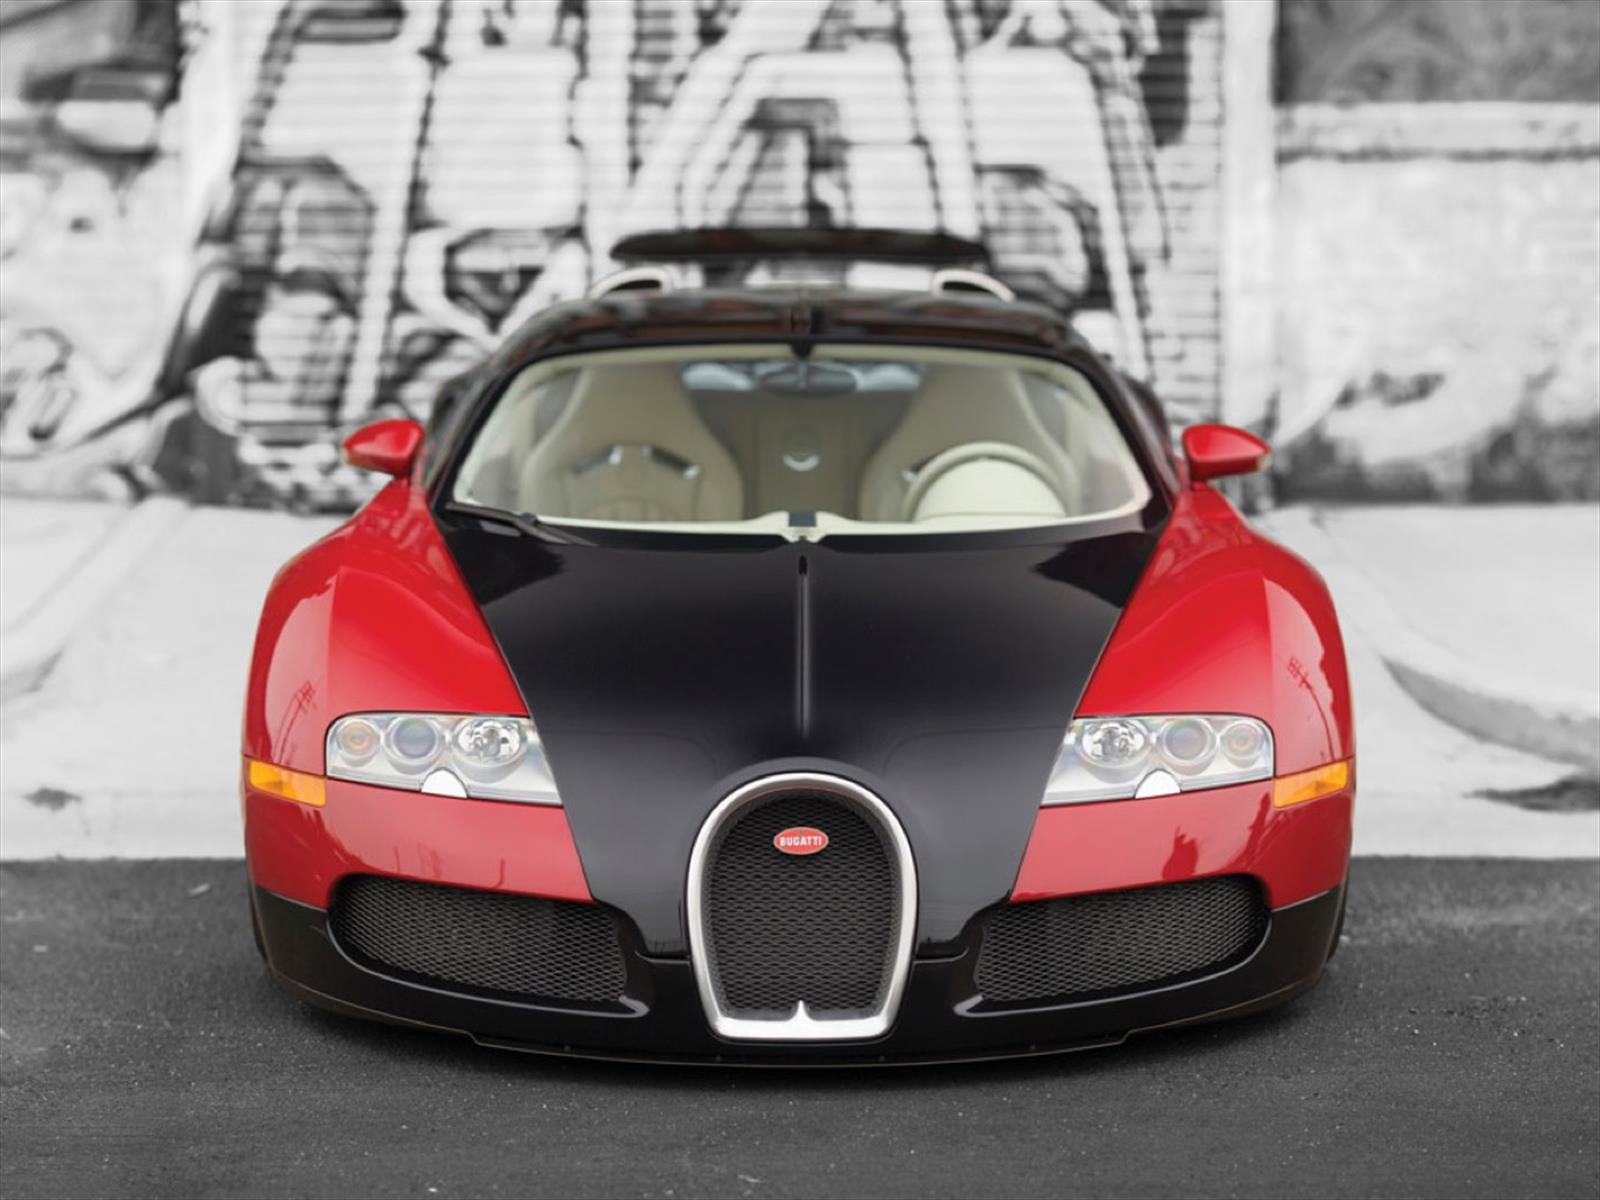 bugatti veyron grand sport es el nuevo auto de cristiano ronaldo. Black Bedroom Furniture Sets. Home Design Ideas